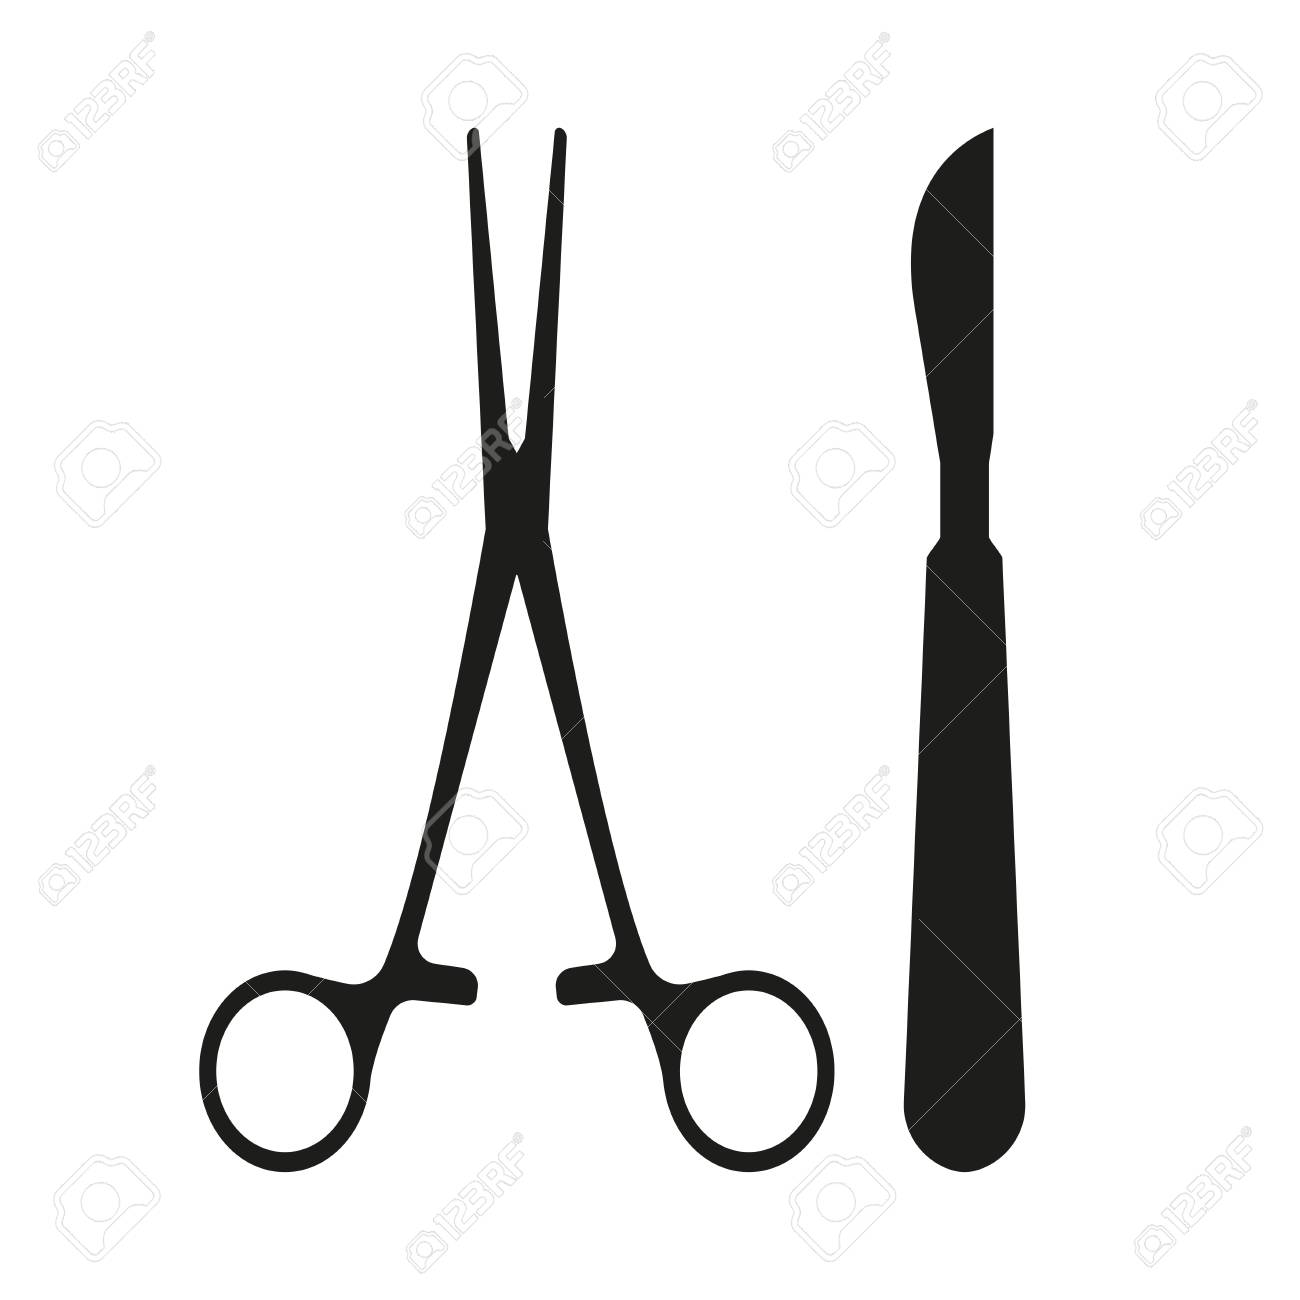 Surgical Instrument. Medical scalpel and clamp icon isolated on white background. Vector illustration. - 94043268